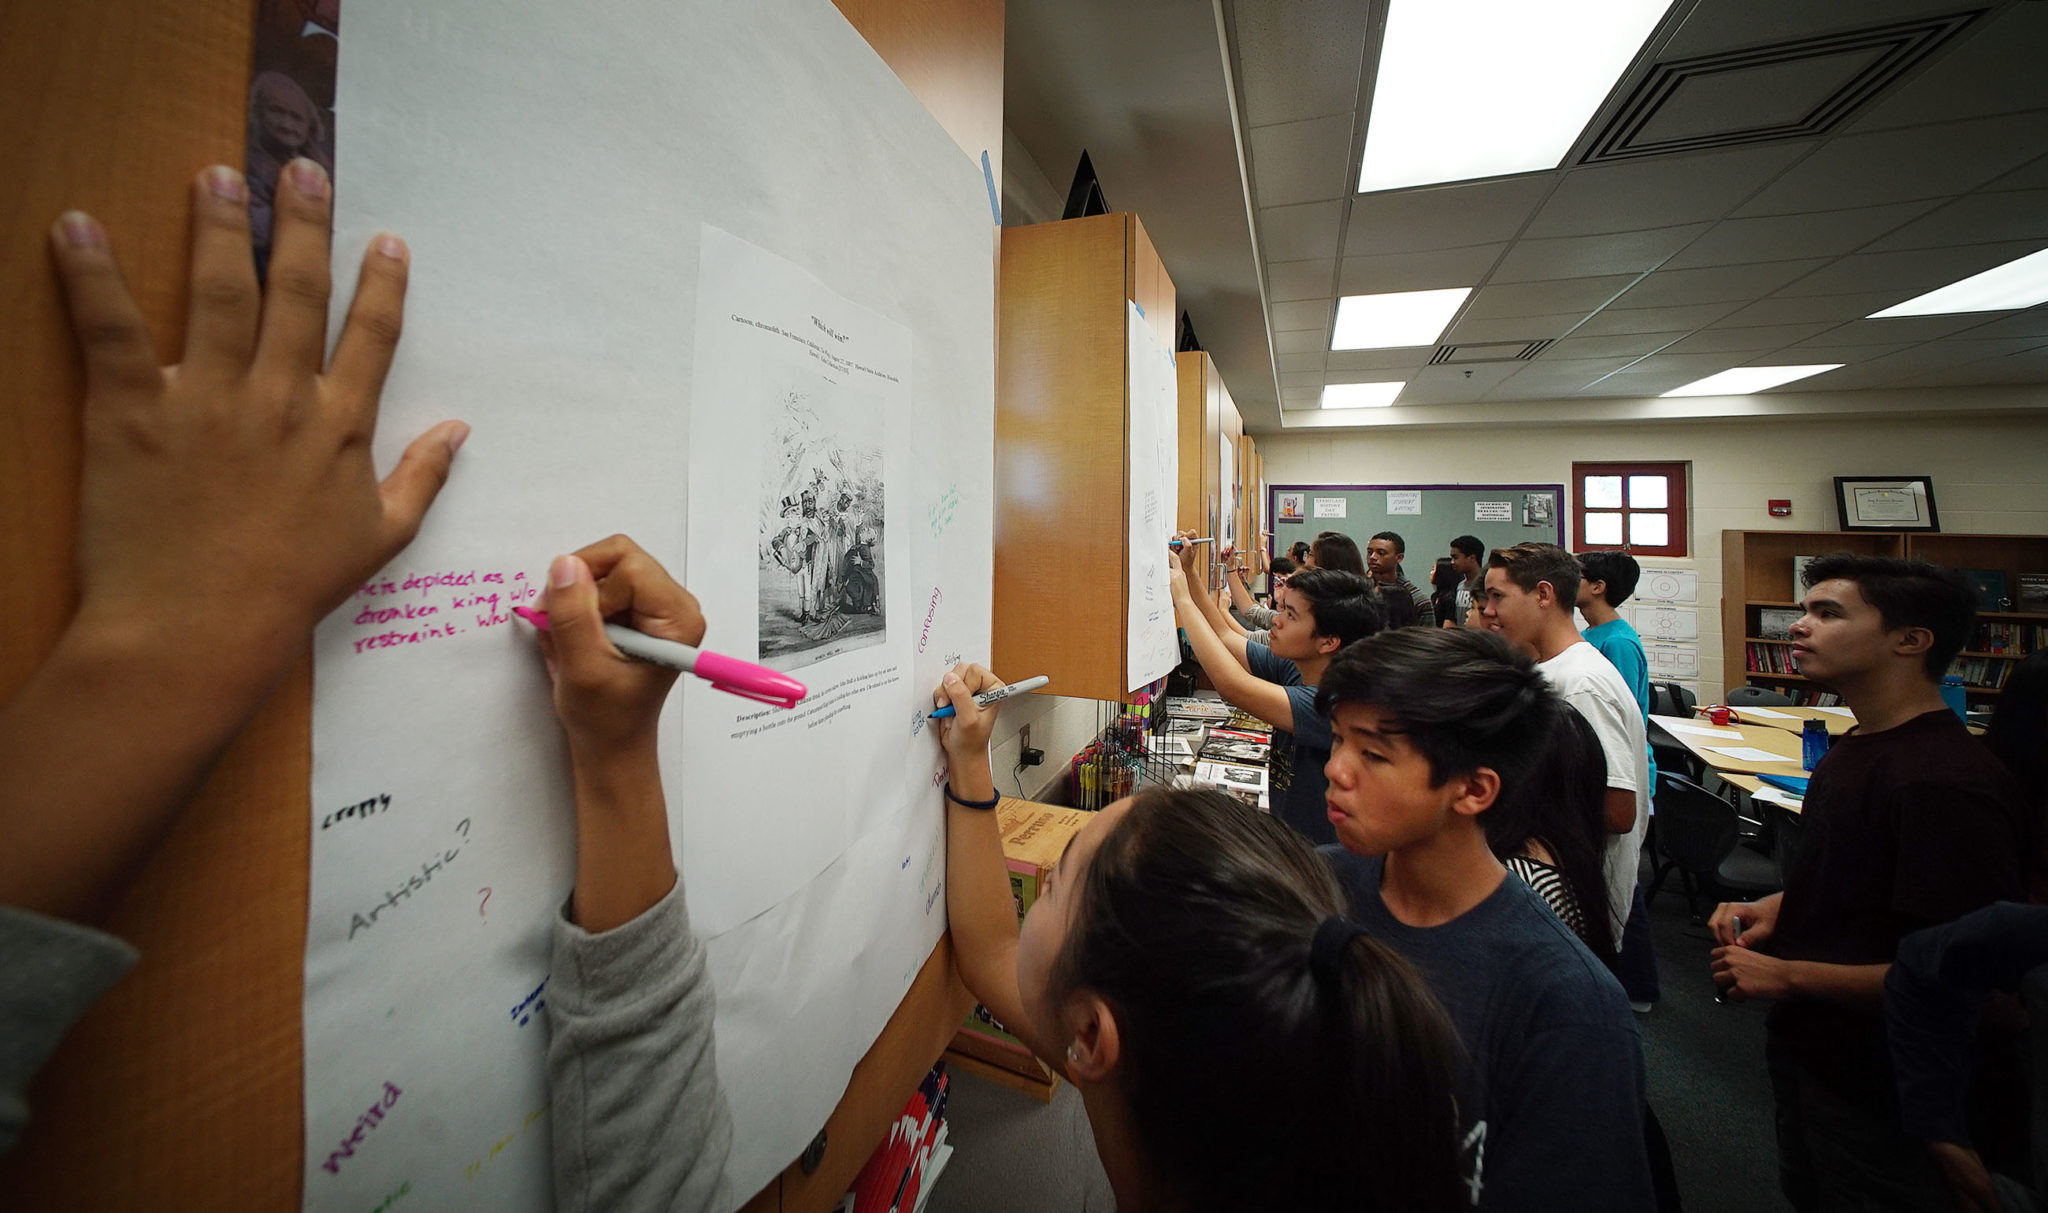 9th graders in Mililani High School's, Mrs. Amy Perruso social studies class write comments and observations on 2 cartoons of King David Kalakaua in the late 1800s.